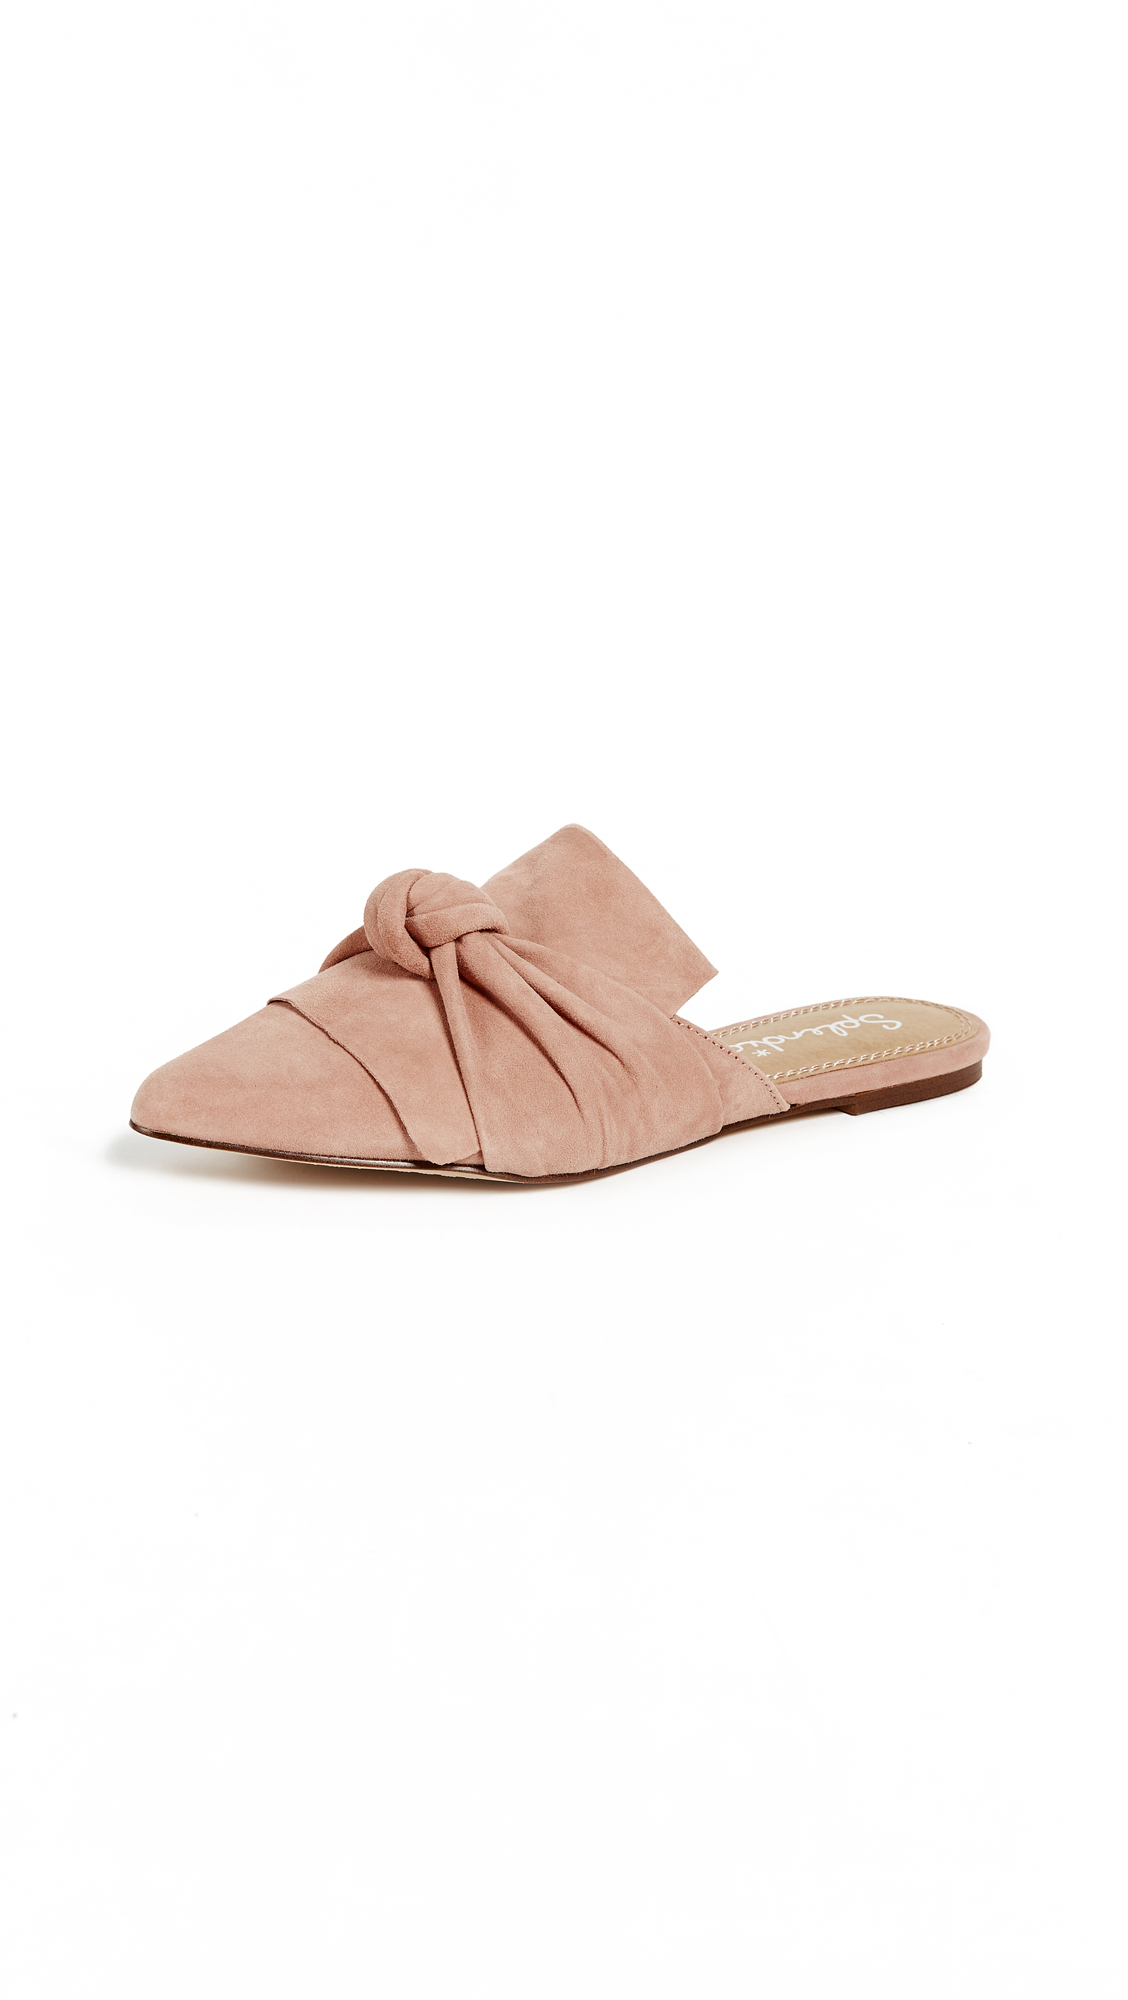 Splendid Bassett Flat Knotted Mules - Dark Blush